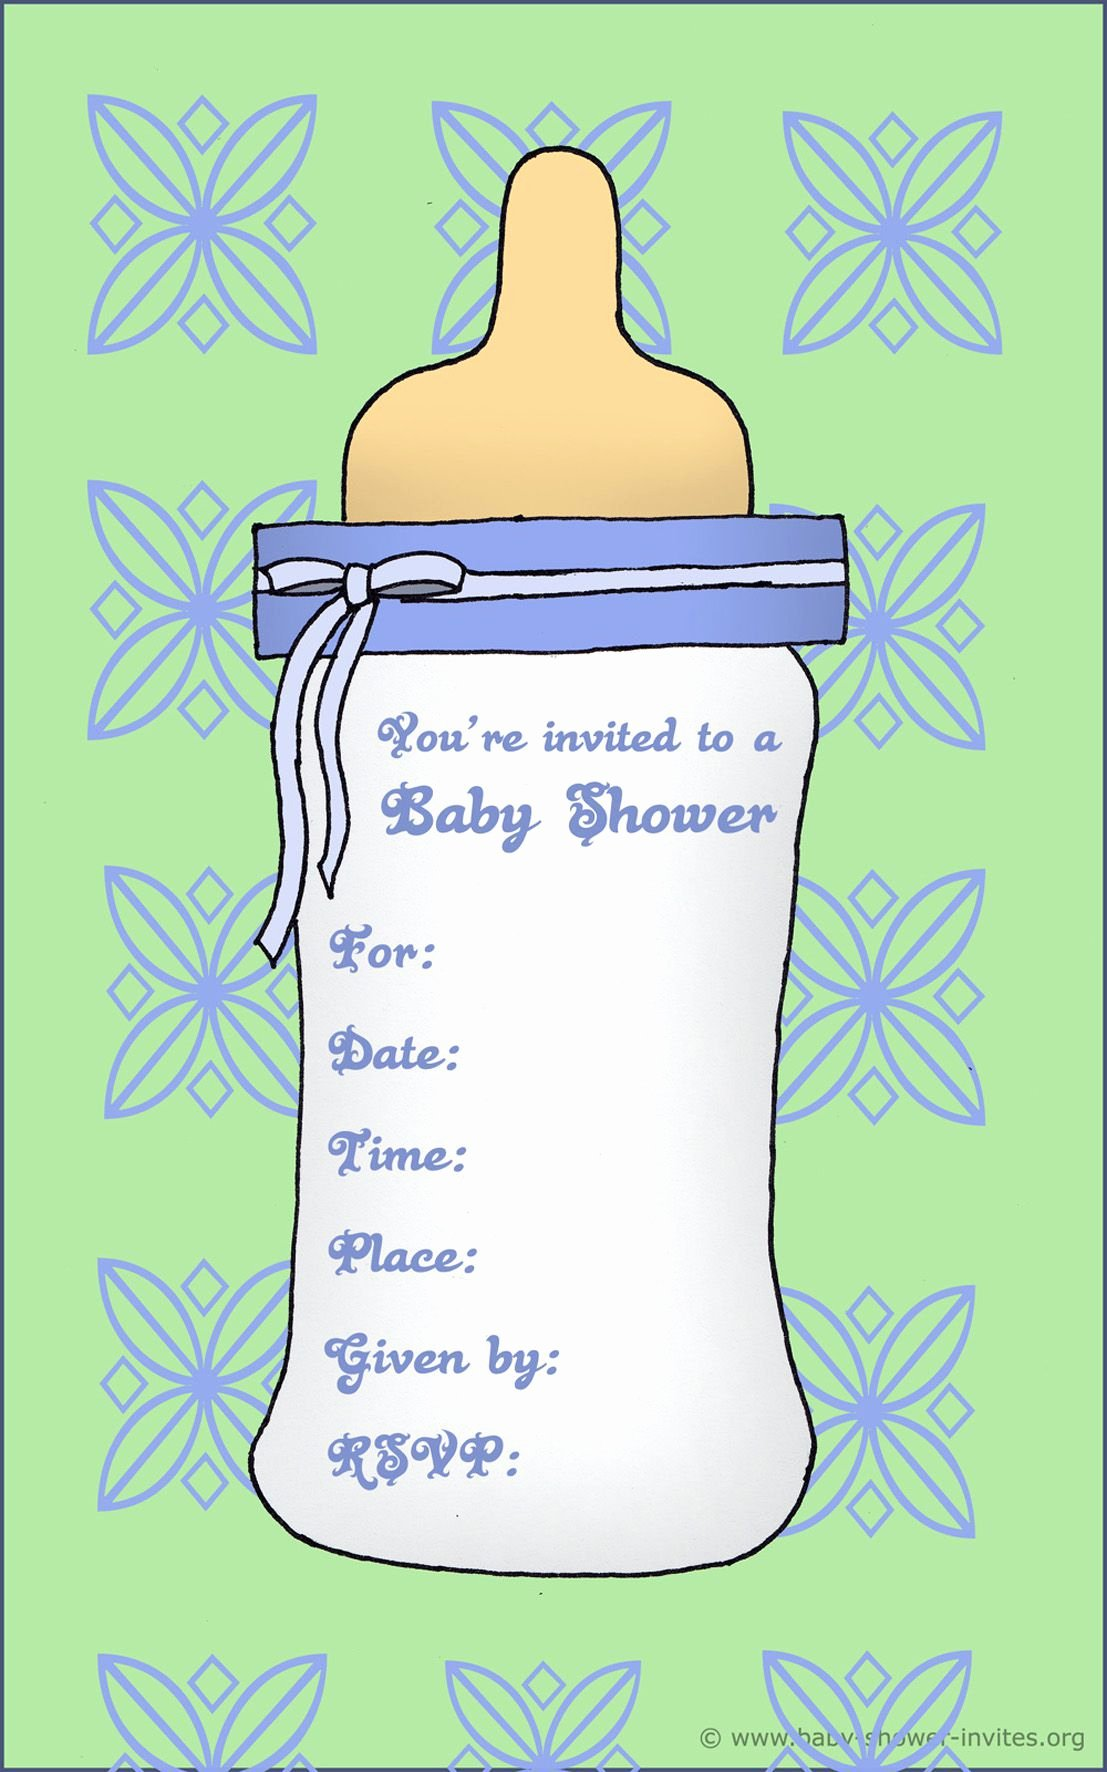 Baby Shower Invitation Free Template Elegant Graduation Party Free Baby Invitation Template Card